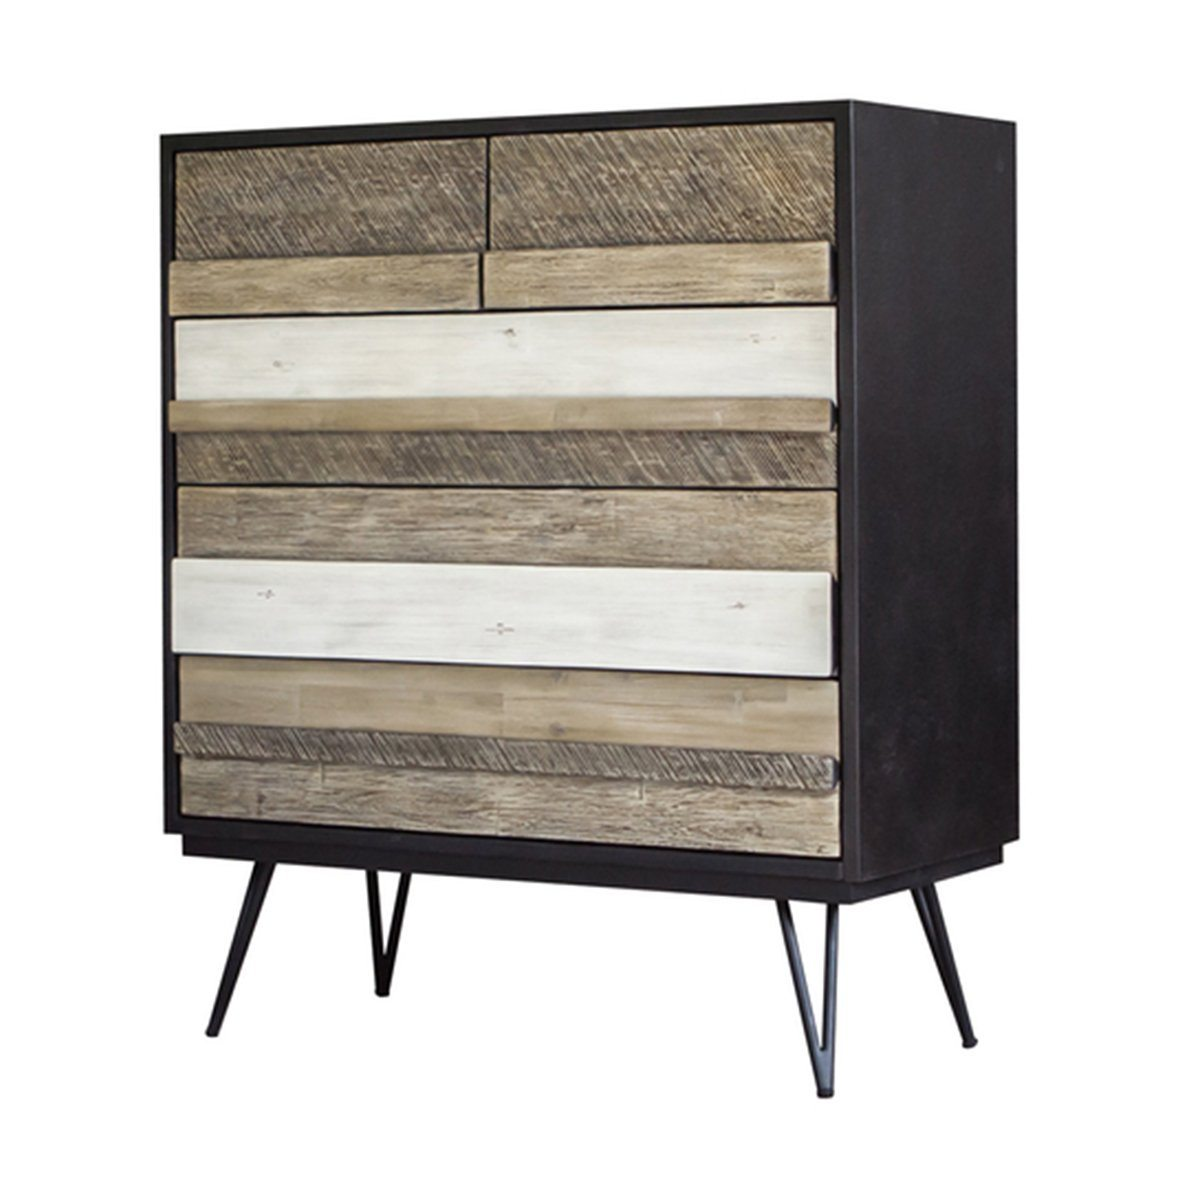 NOIR HAVANA 5 DRAWER CHEST - Showhome Furniture